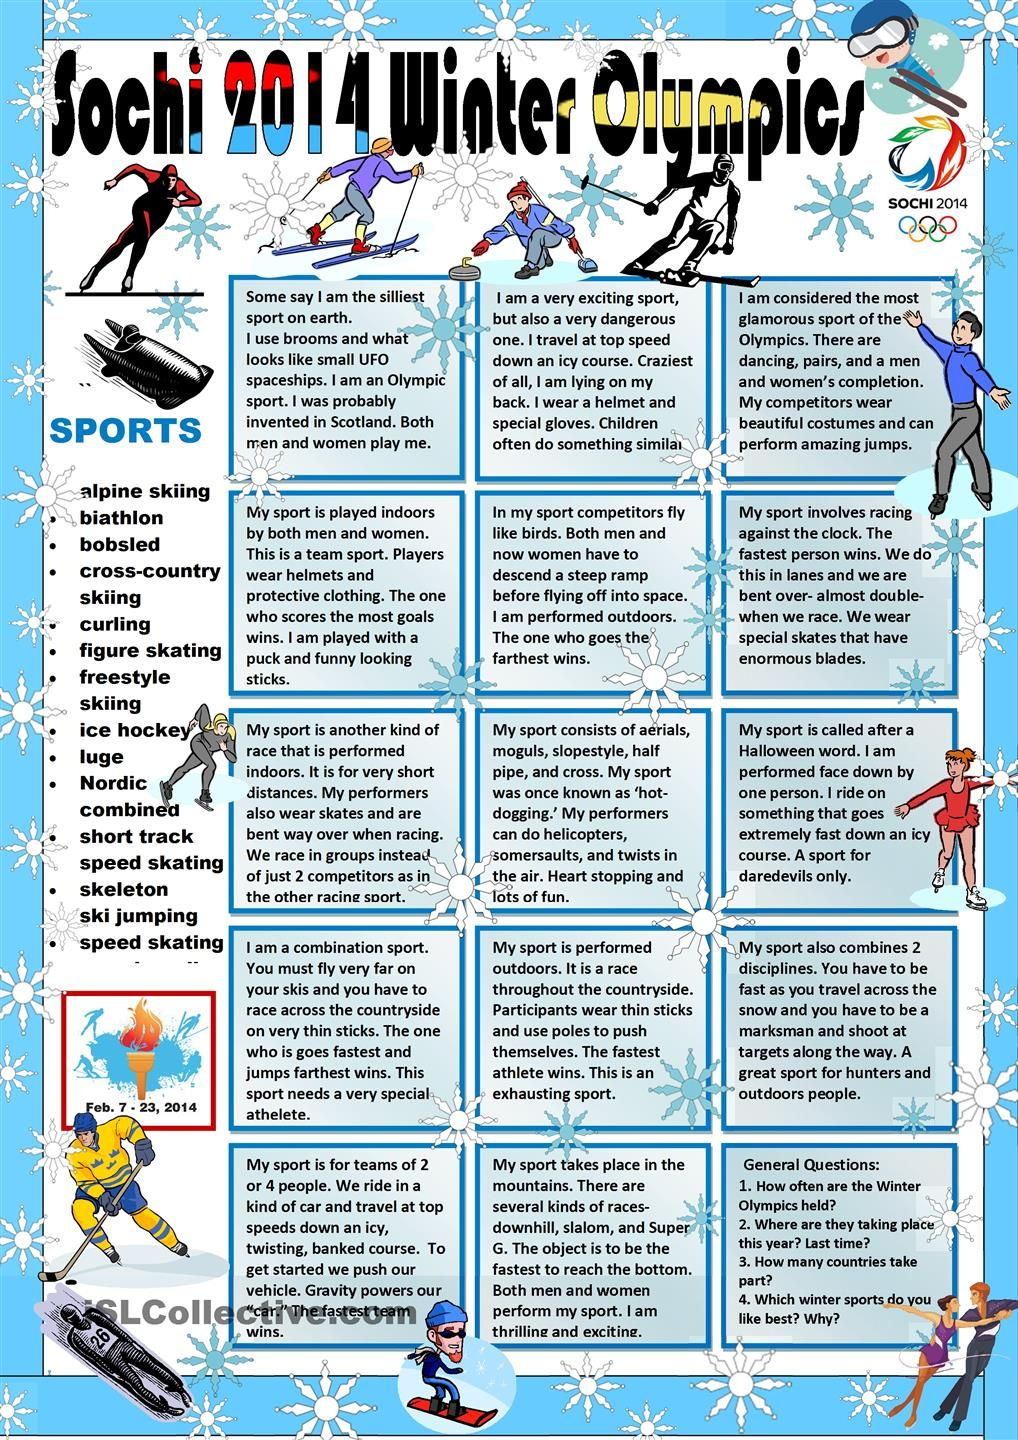 The Olympic Games | LearnEnglish Teens - British Council